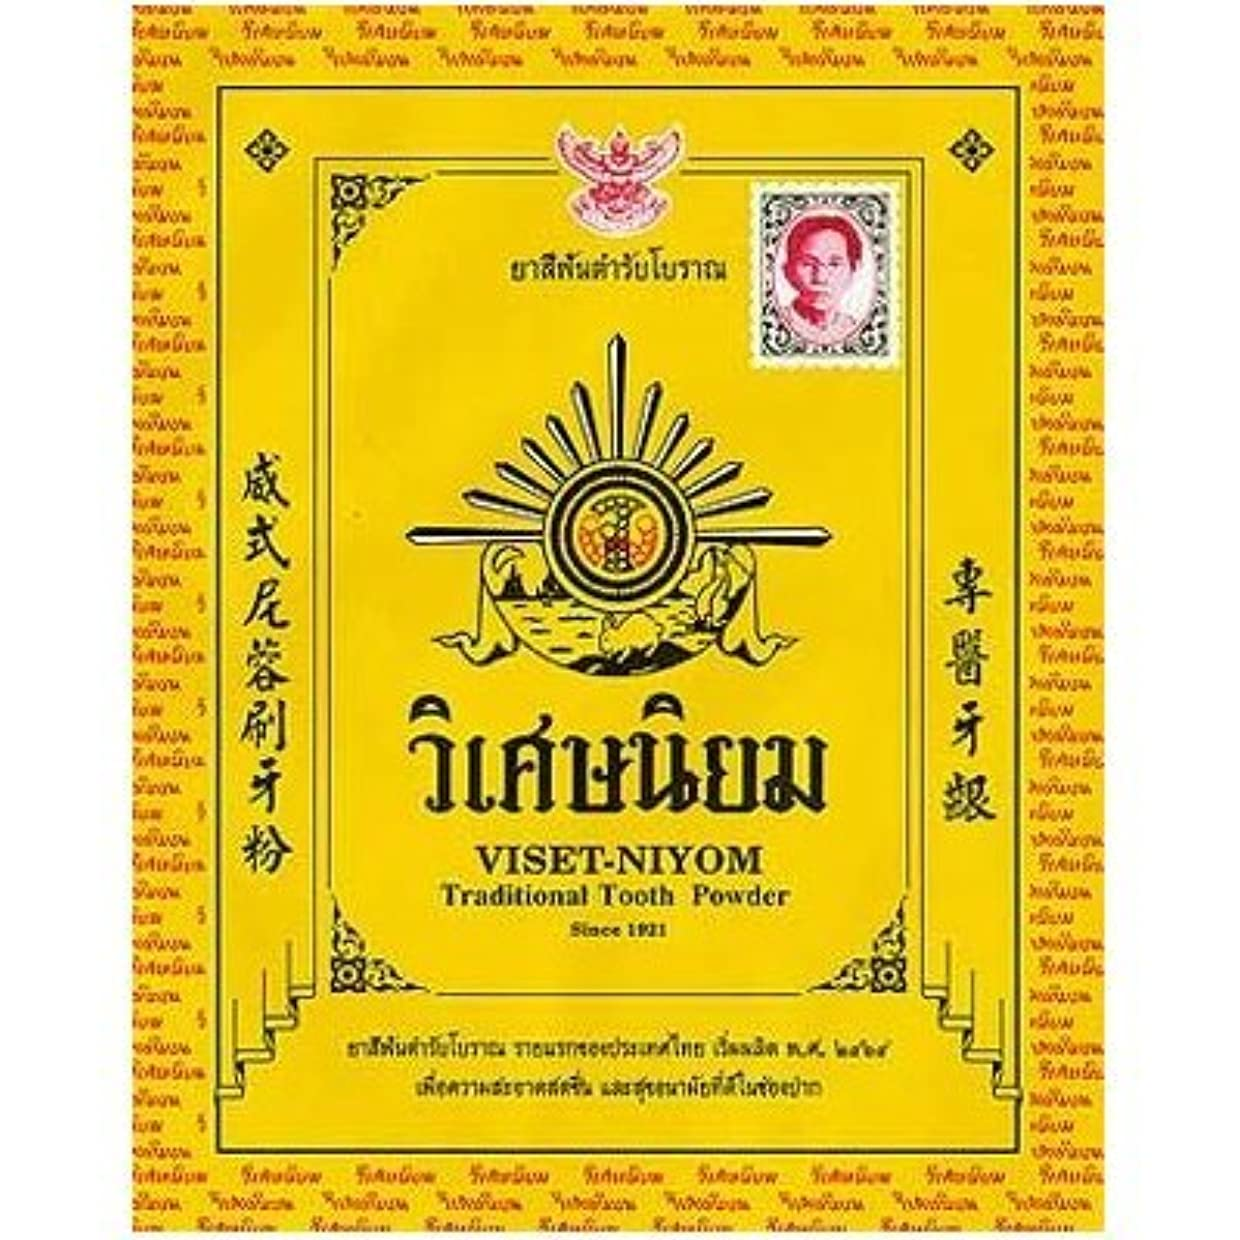 プットストラトフォードオンエイボンバインドThai Herbal Whitening Tooth Powder Original Thai Traditional Toothpaste 40 G. by Tooth Powder